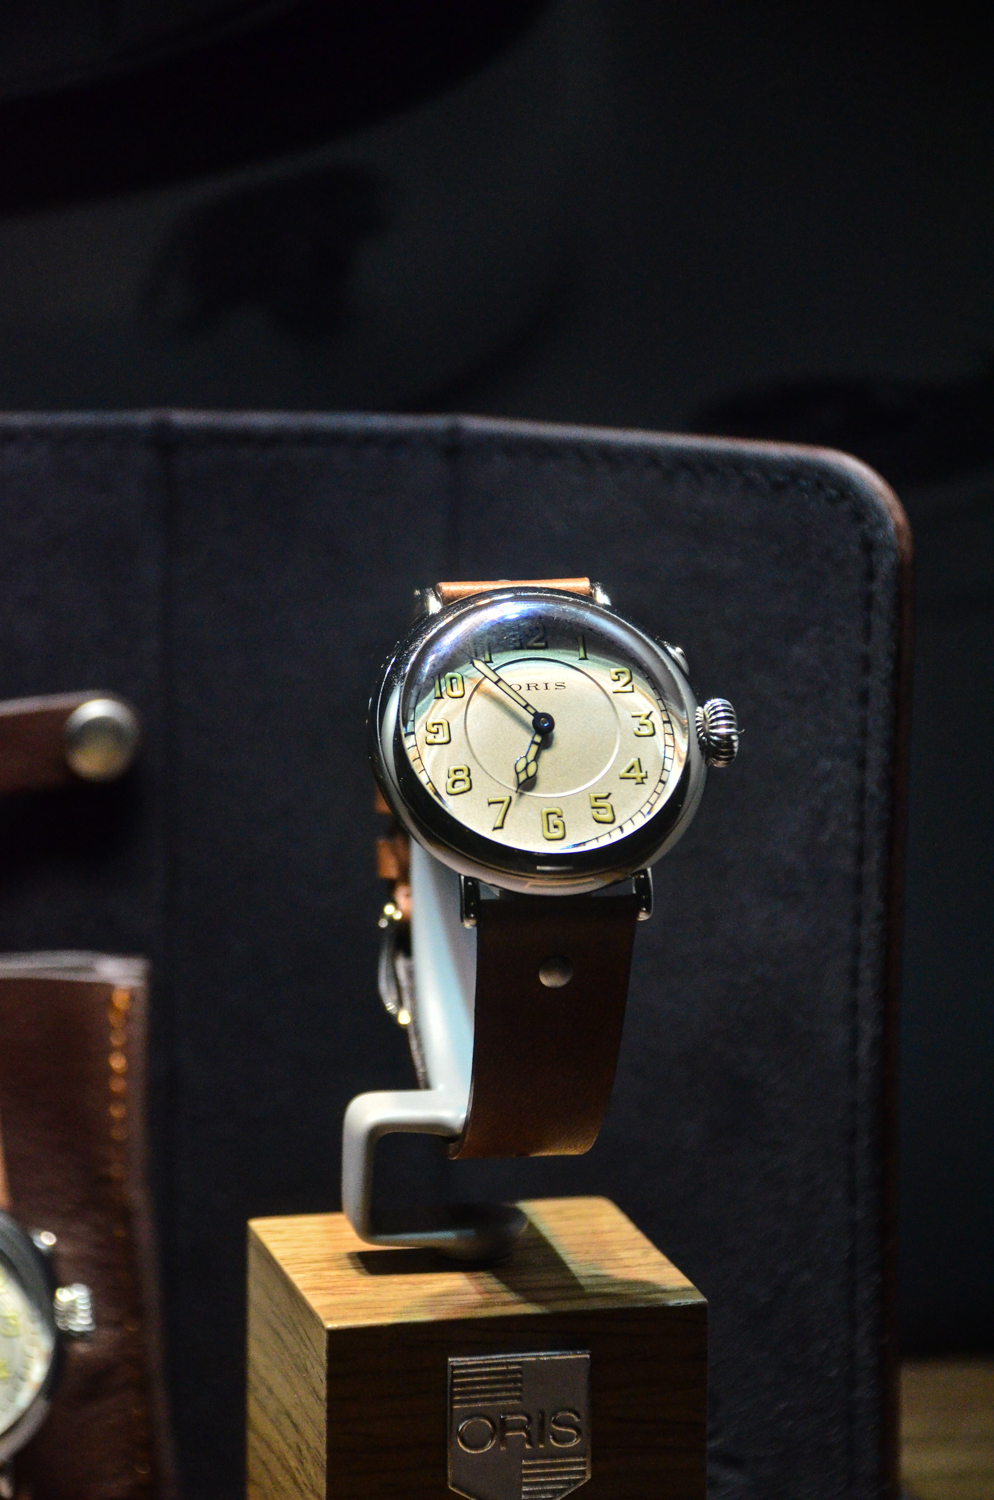 Oris Big Crown 1917 on display with dramatic light